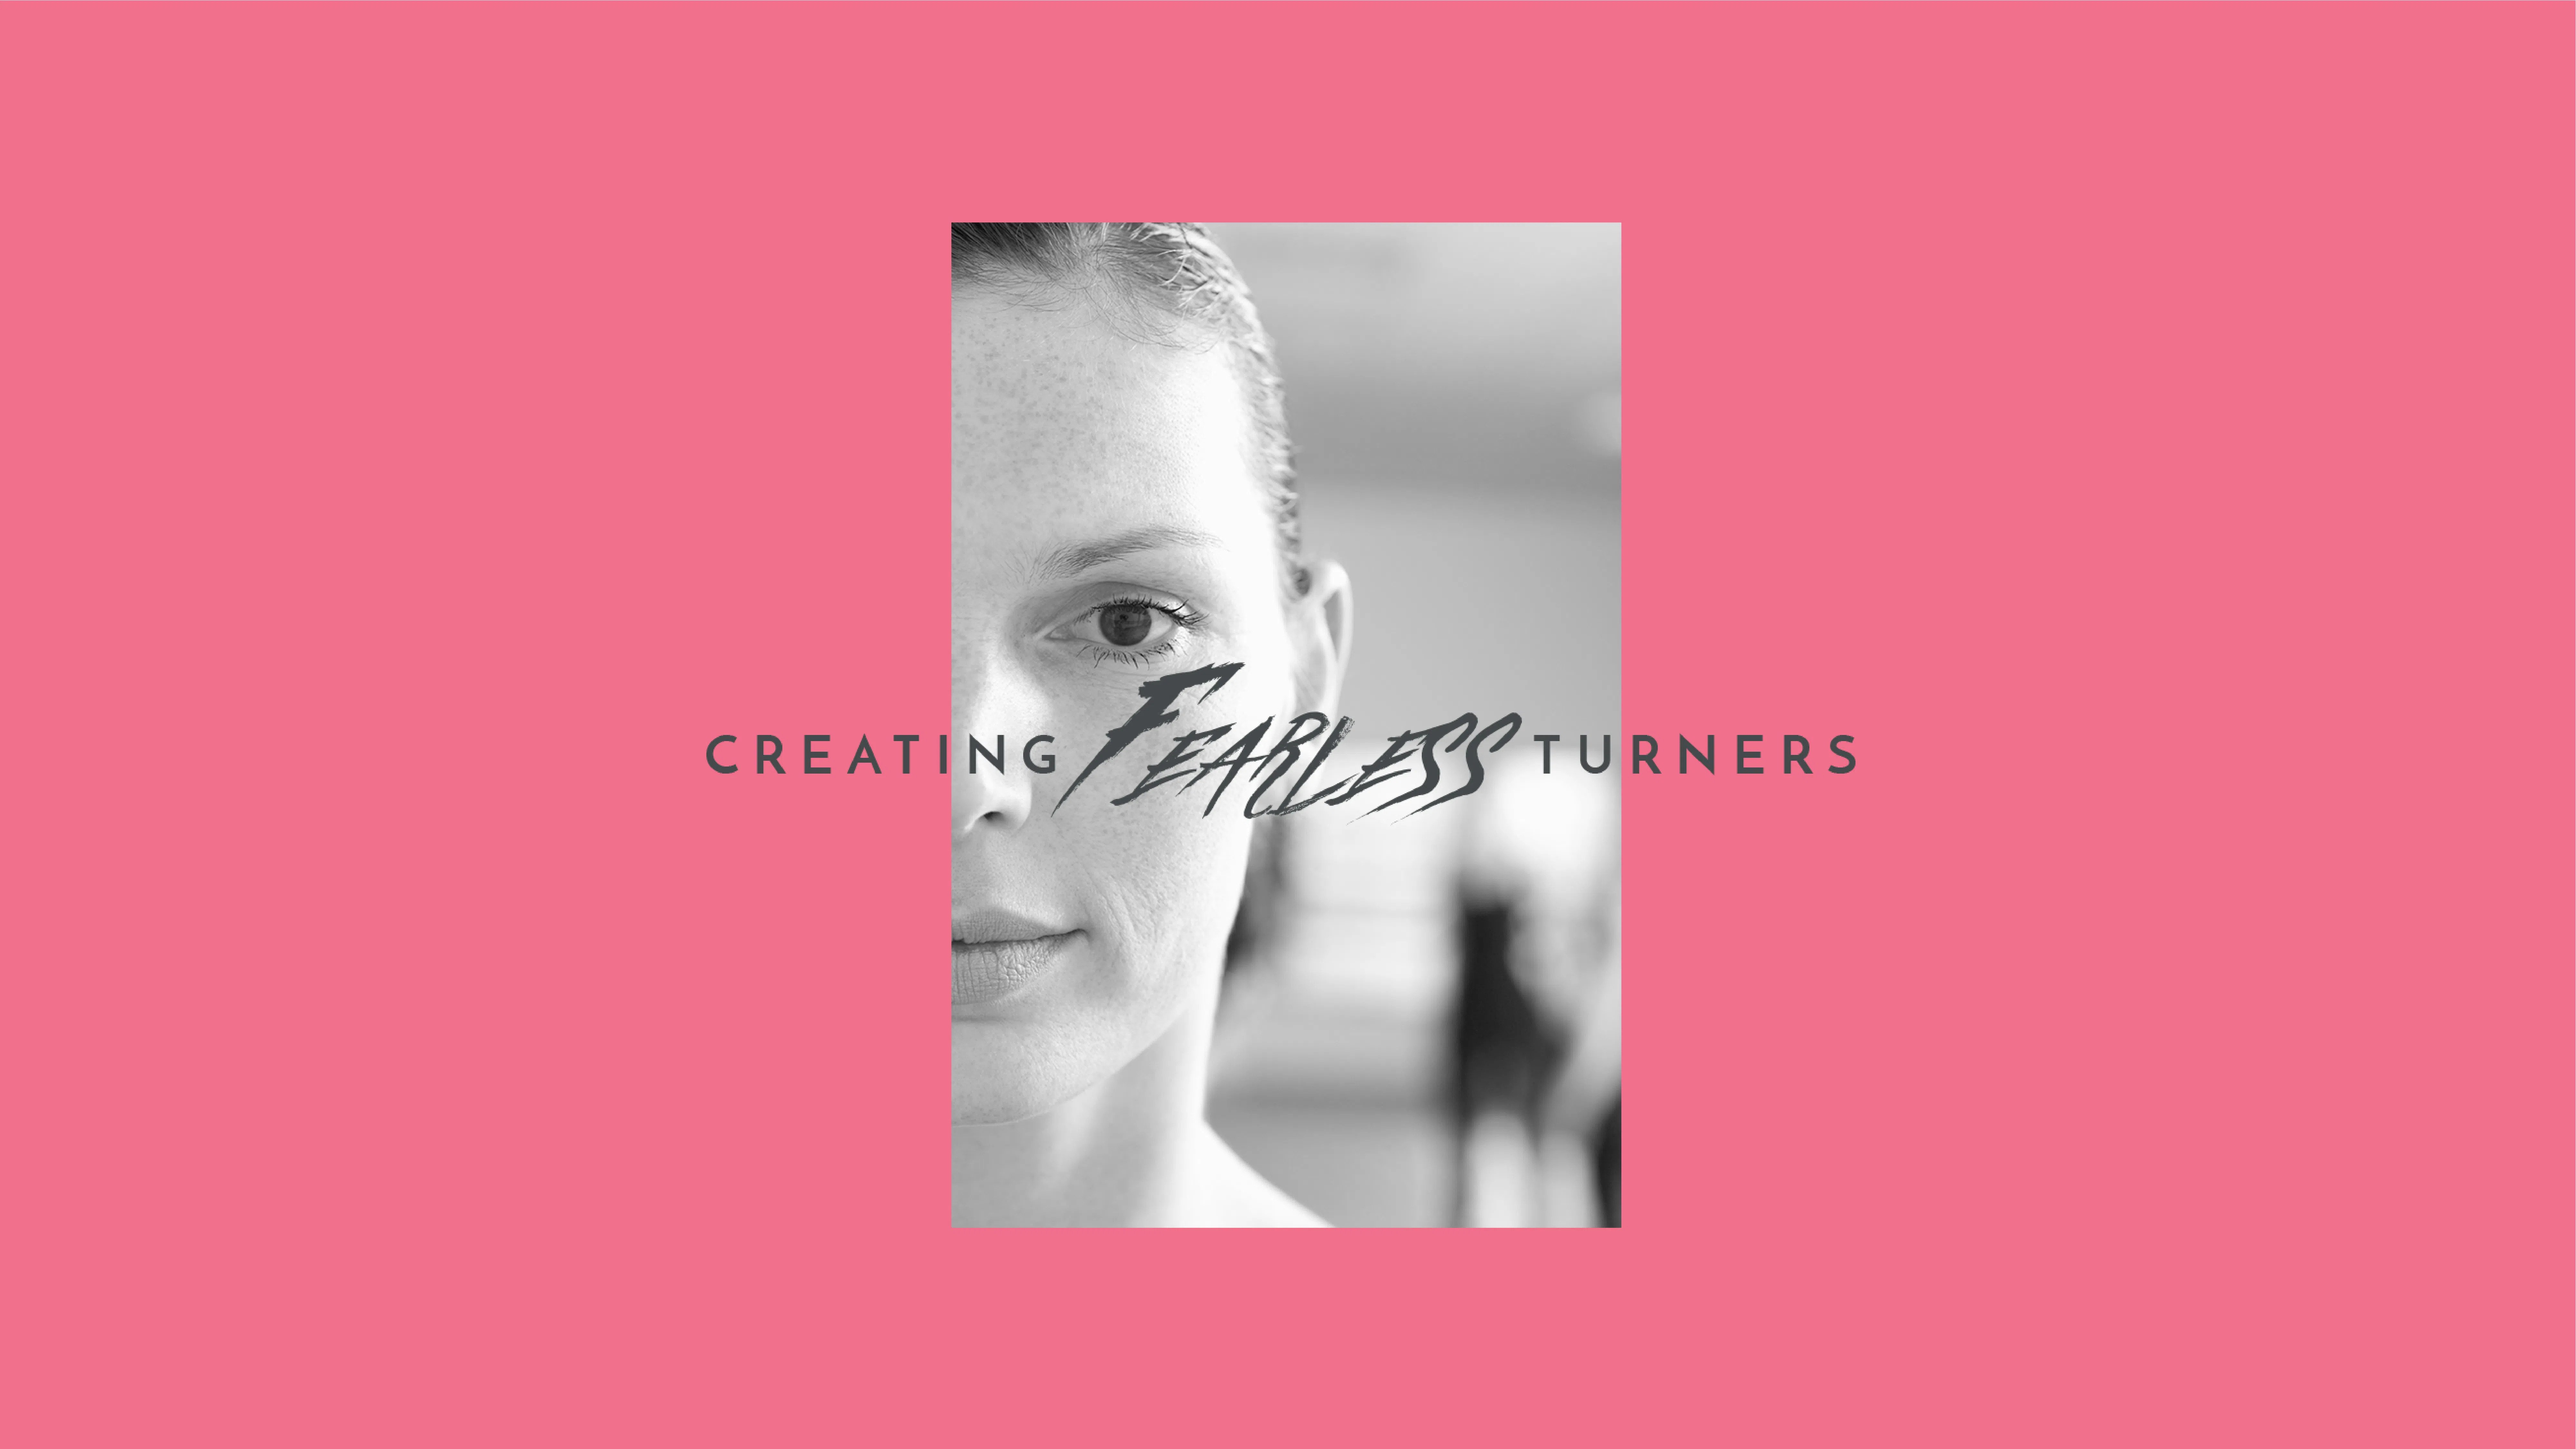 Creating Fearless Turners